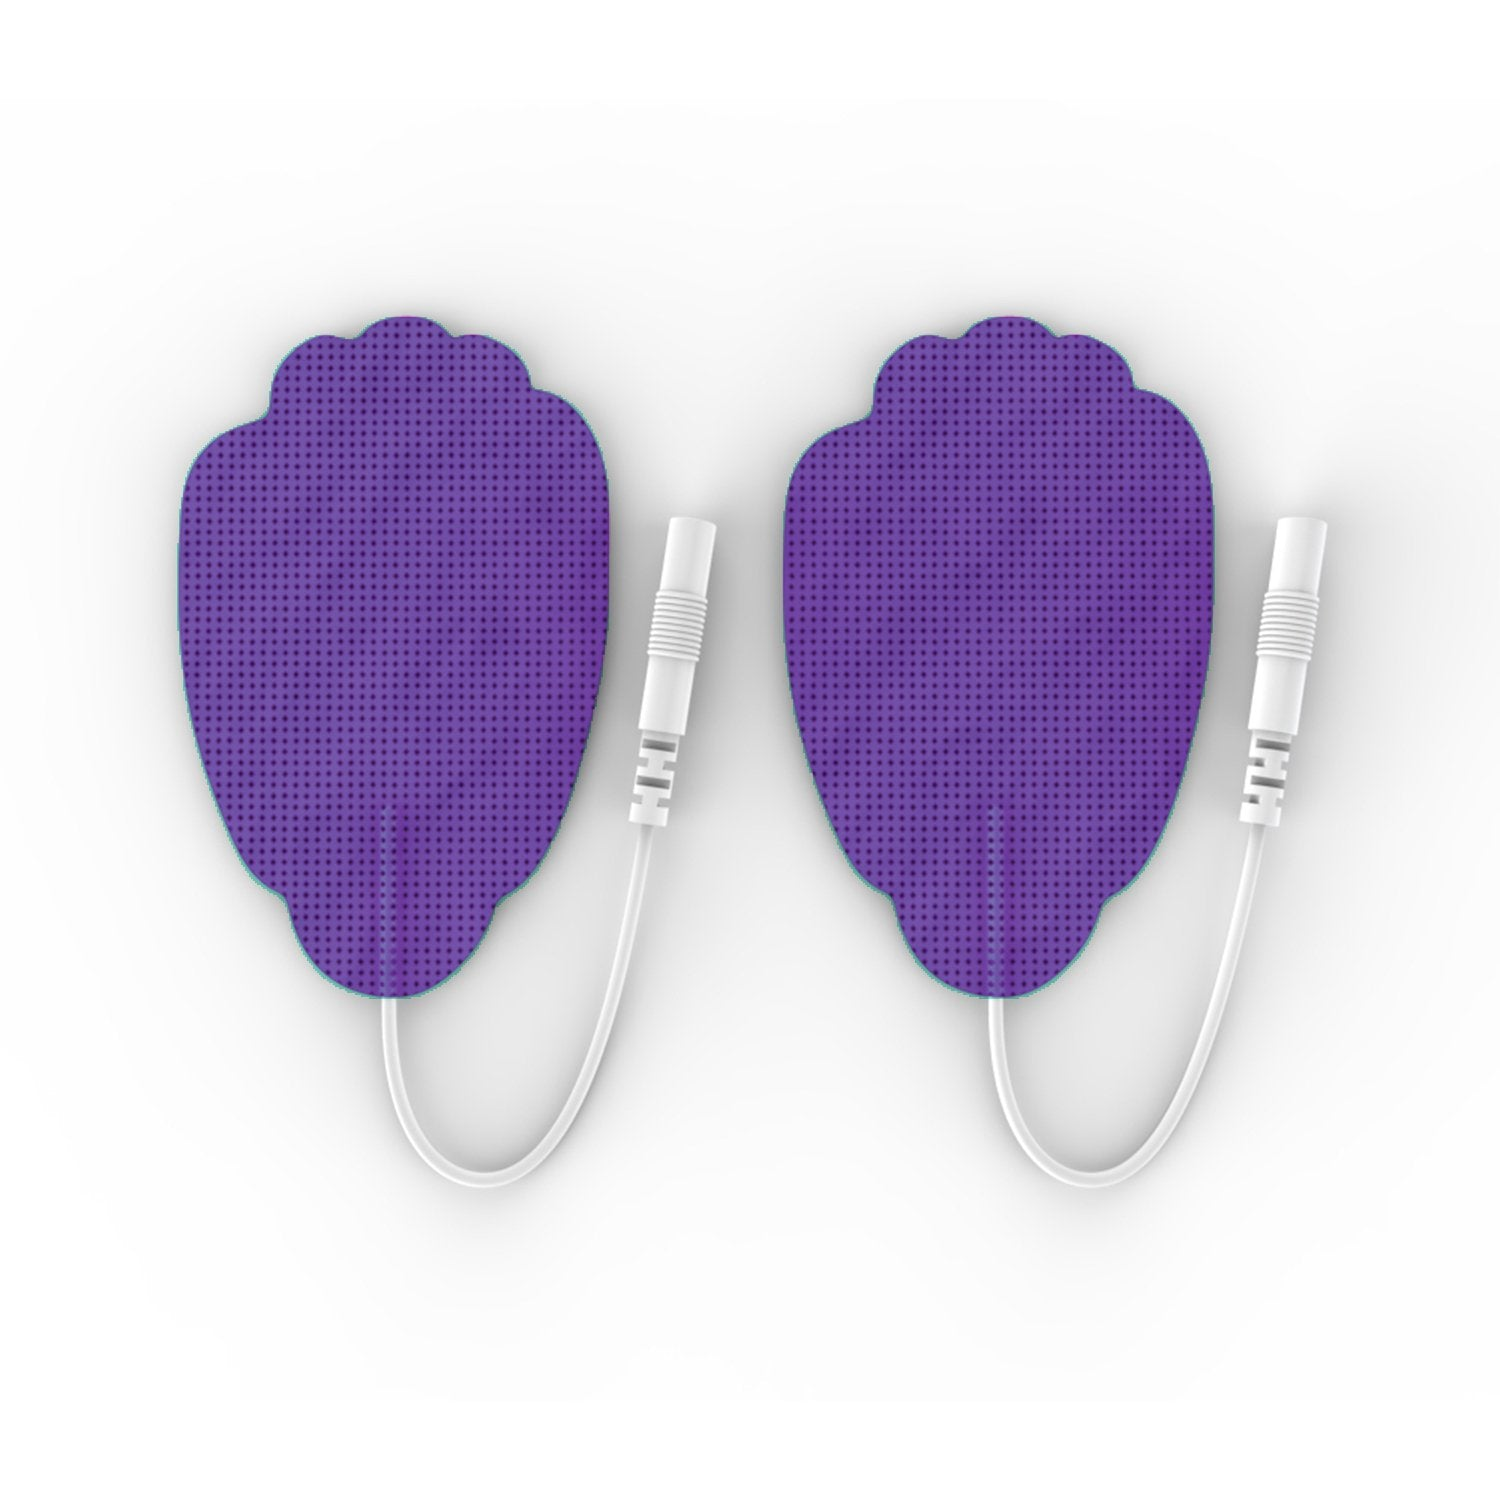 10 Pairs (20 Pcs) Purple Pin-Insert Large Hand-Shaped Electrode Patches Pads - HealthmateForever